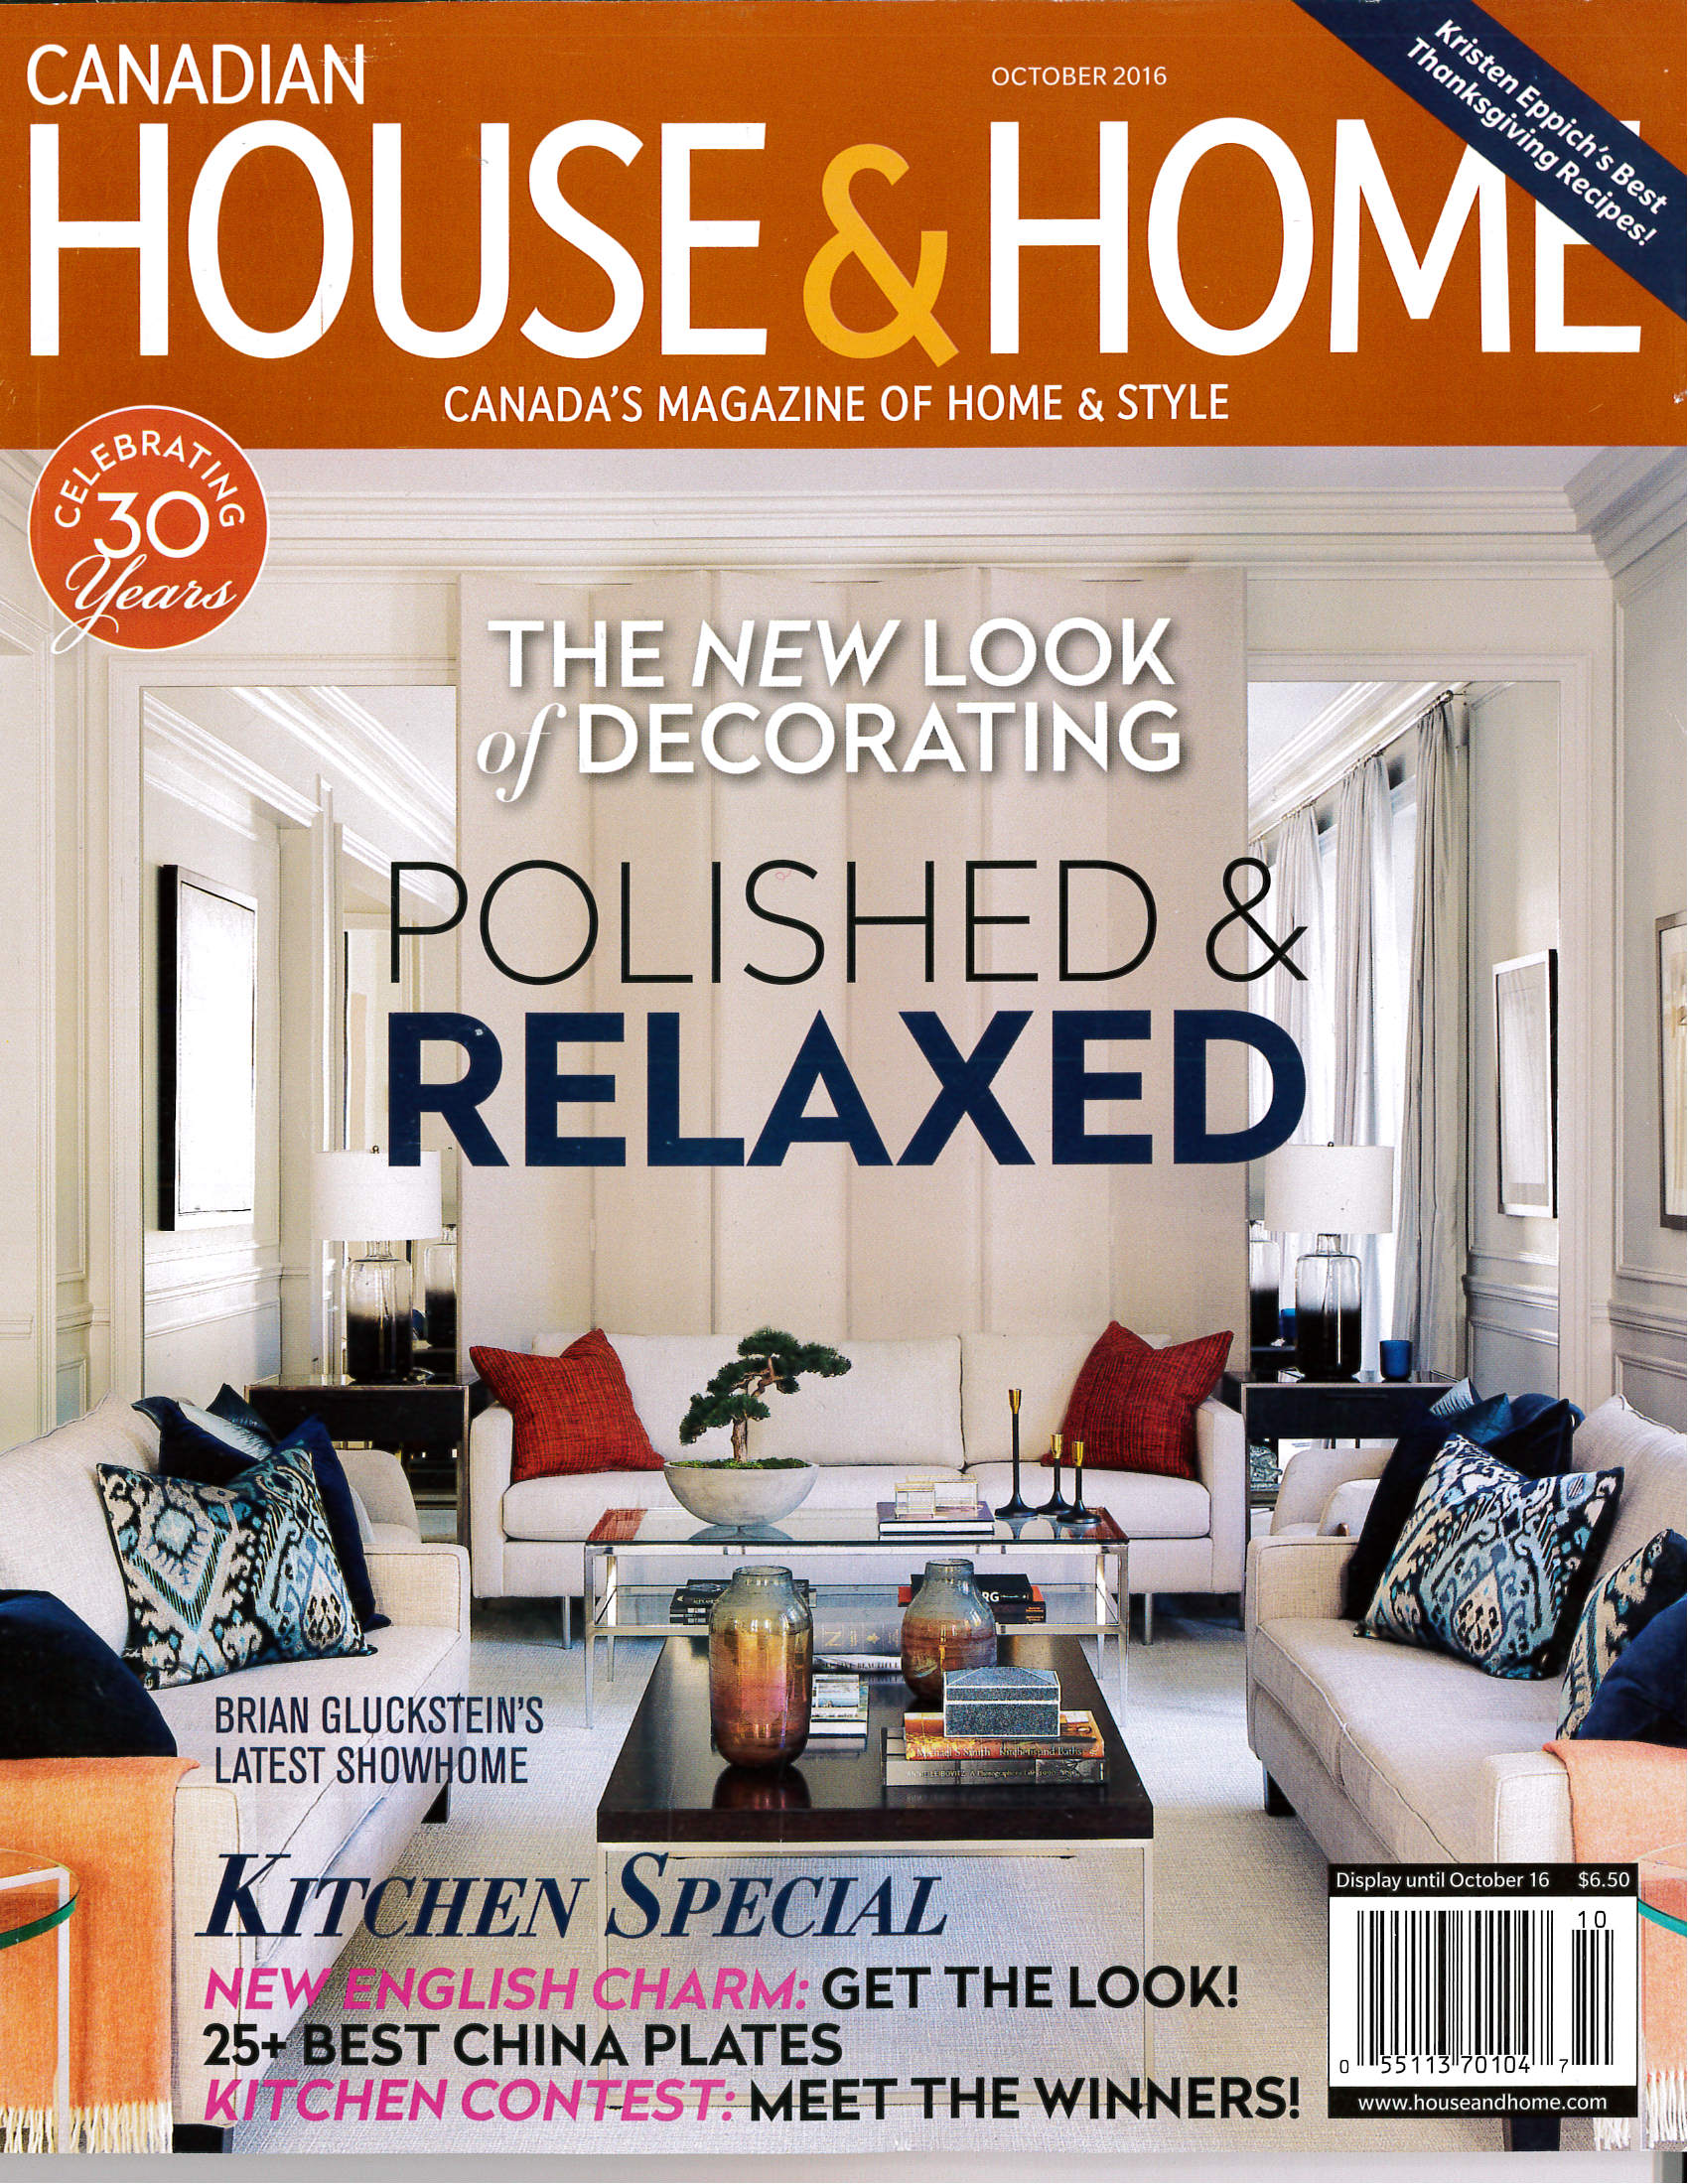 canadian house home - House And Homes Magazine